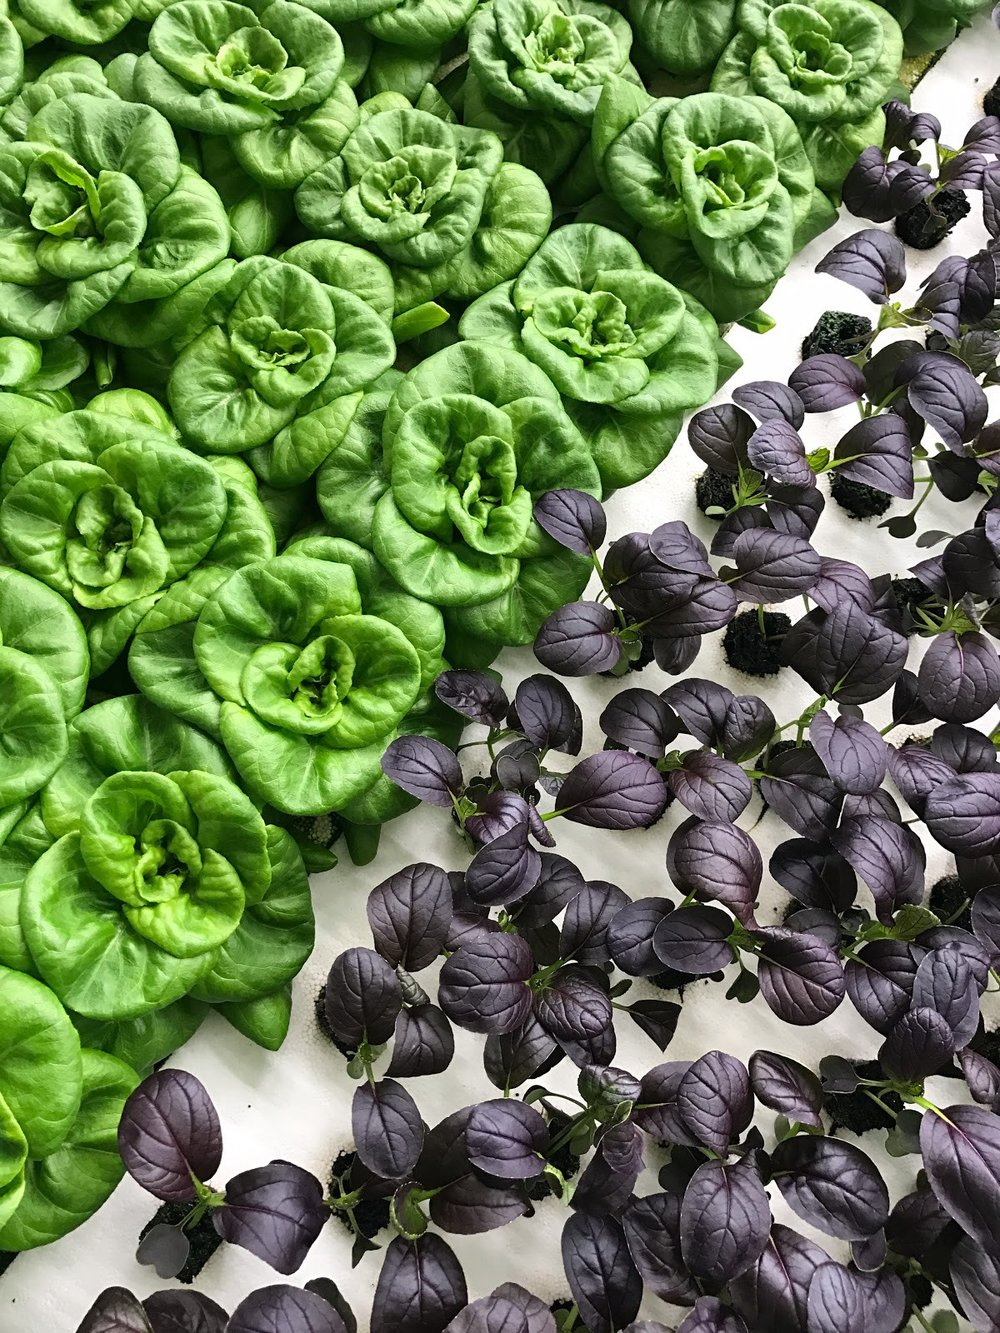 Bowery Butterhead and lettuce growing in a hydroponic system.